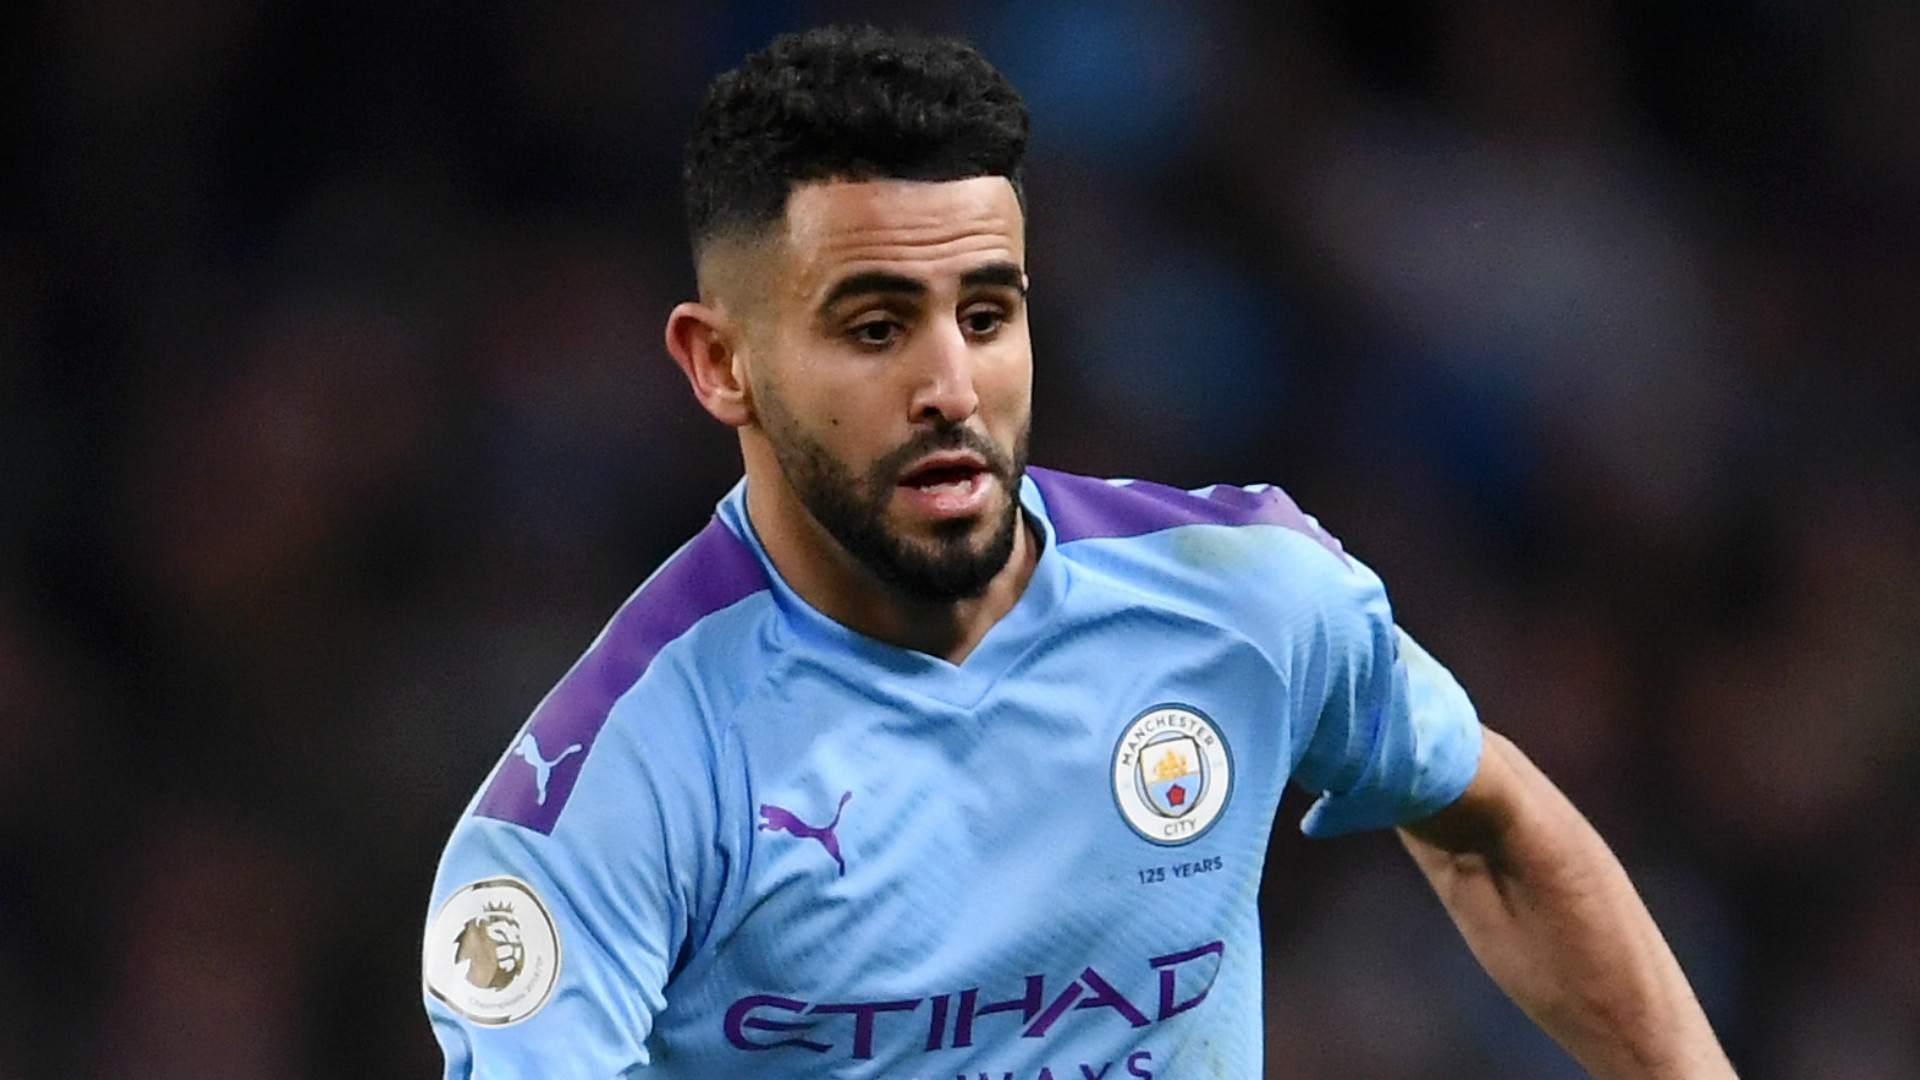 Man City have everything needed to win the Champions League, says ...